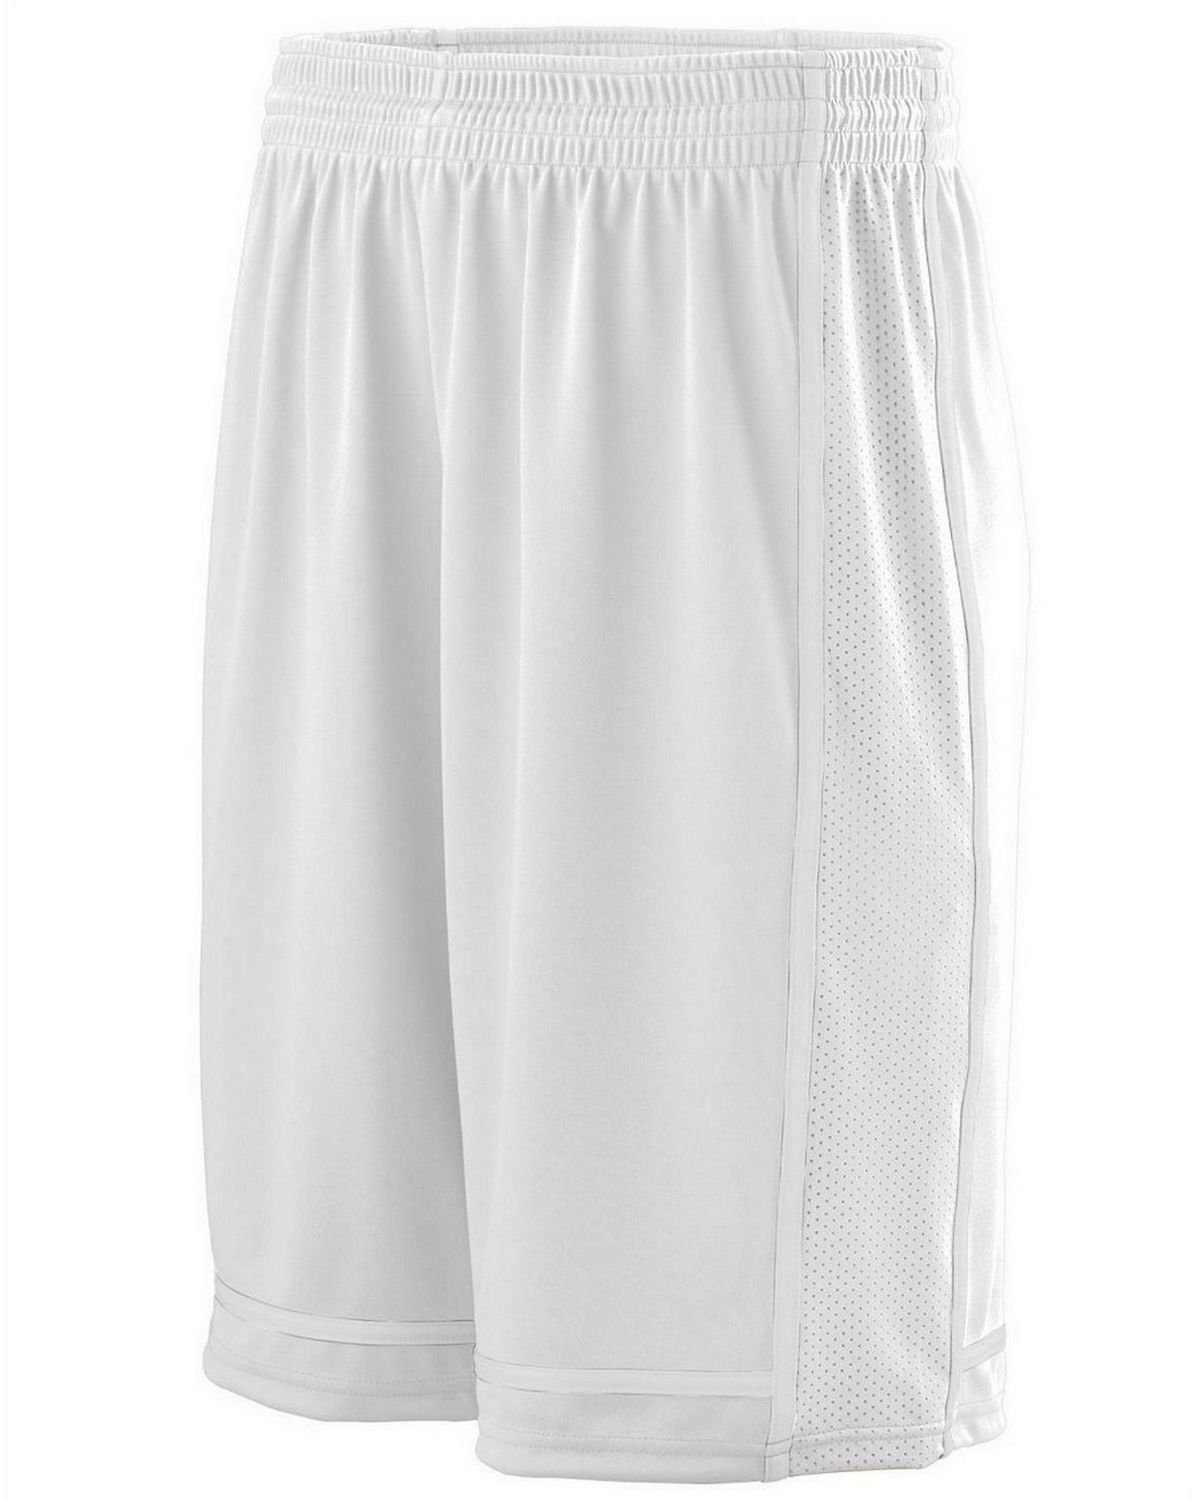 Augusta Sportswear 1185 Men's Wicking Polyester Shorts with Mesh Inserts